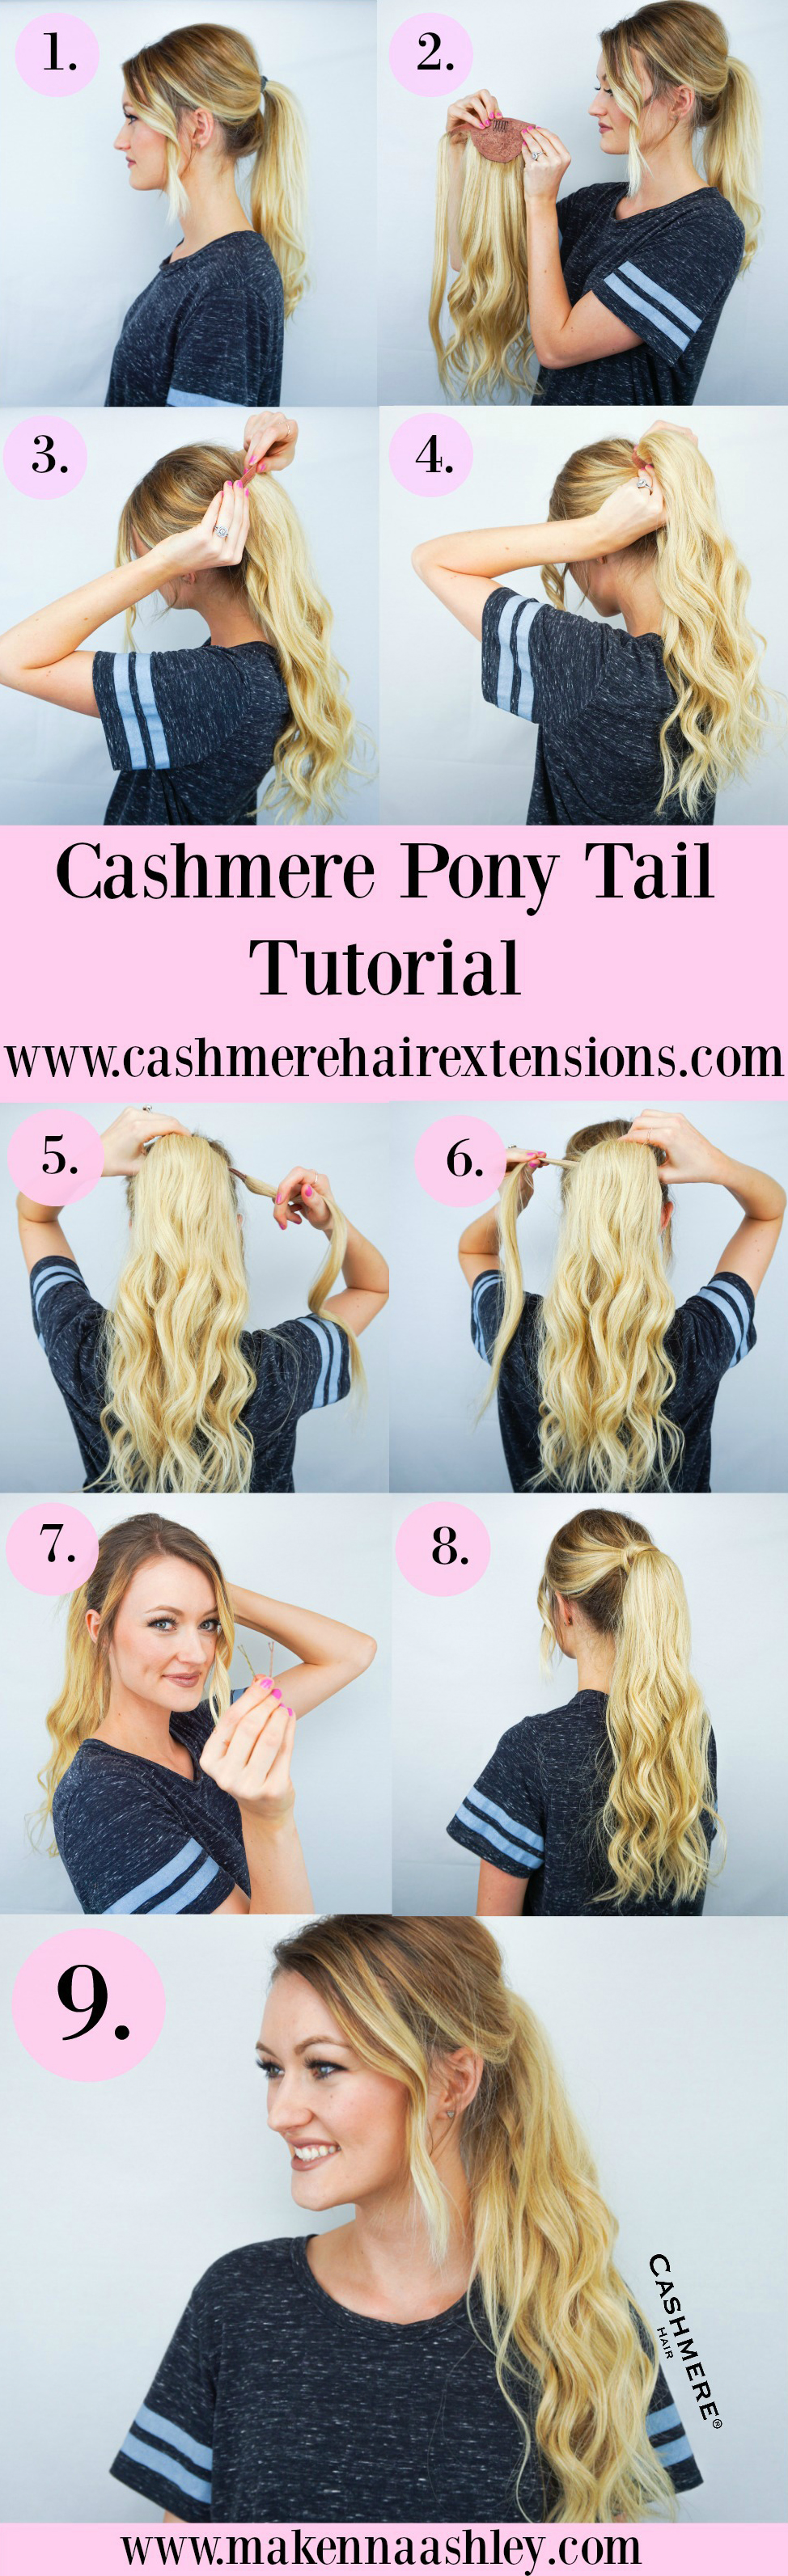 Cashmere Pony Tail Pic Tutorial 2